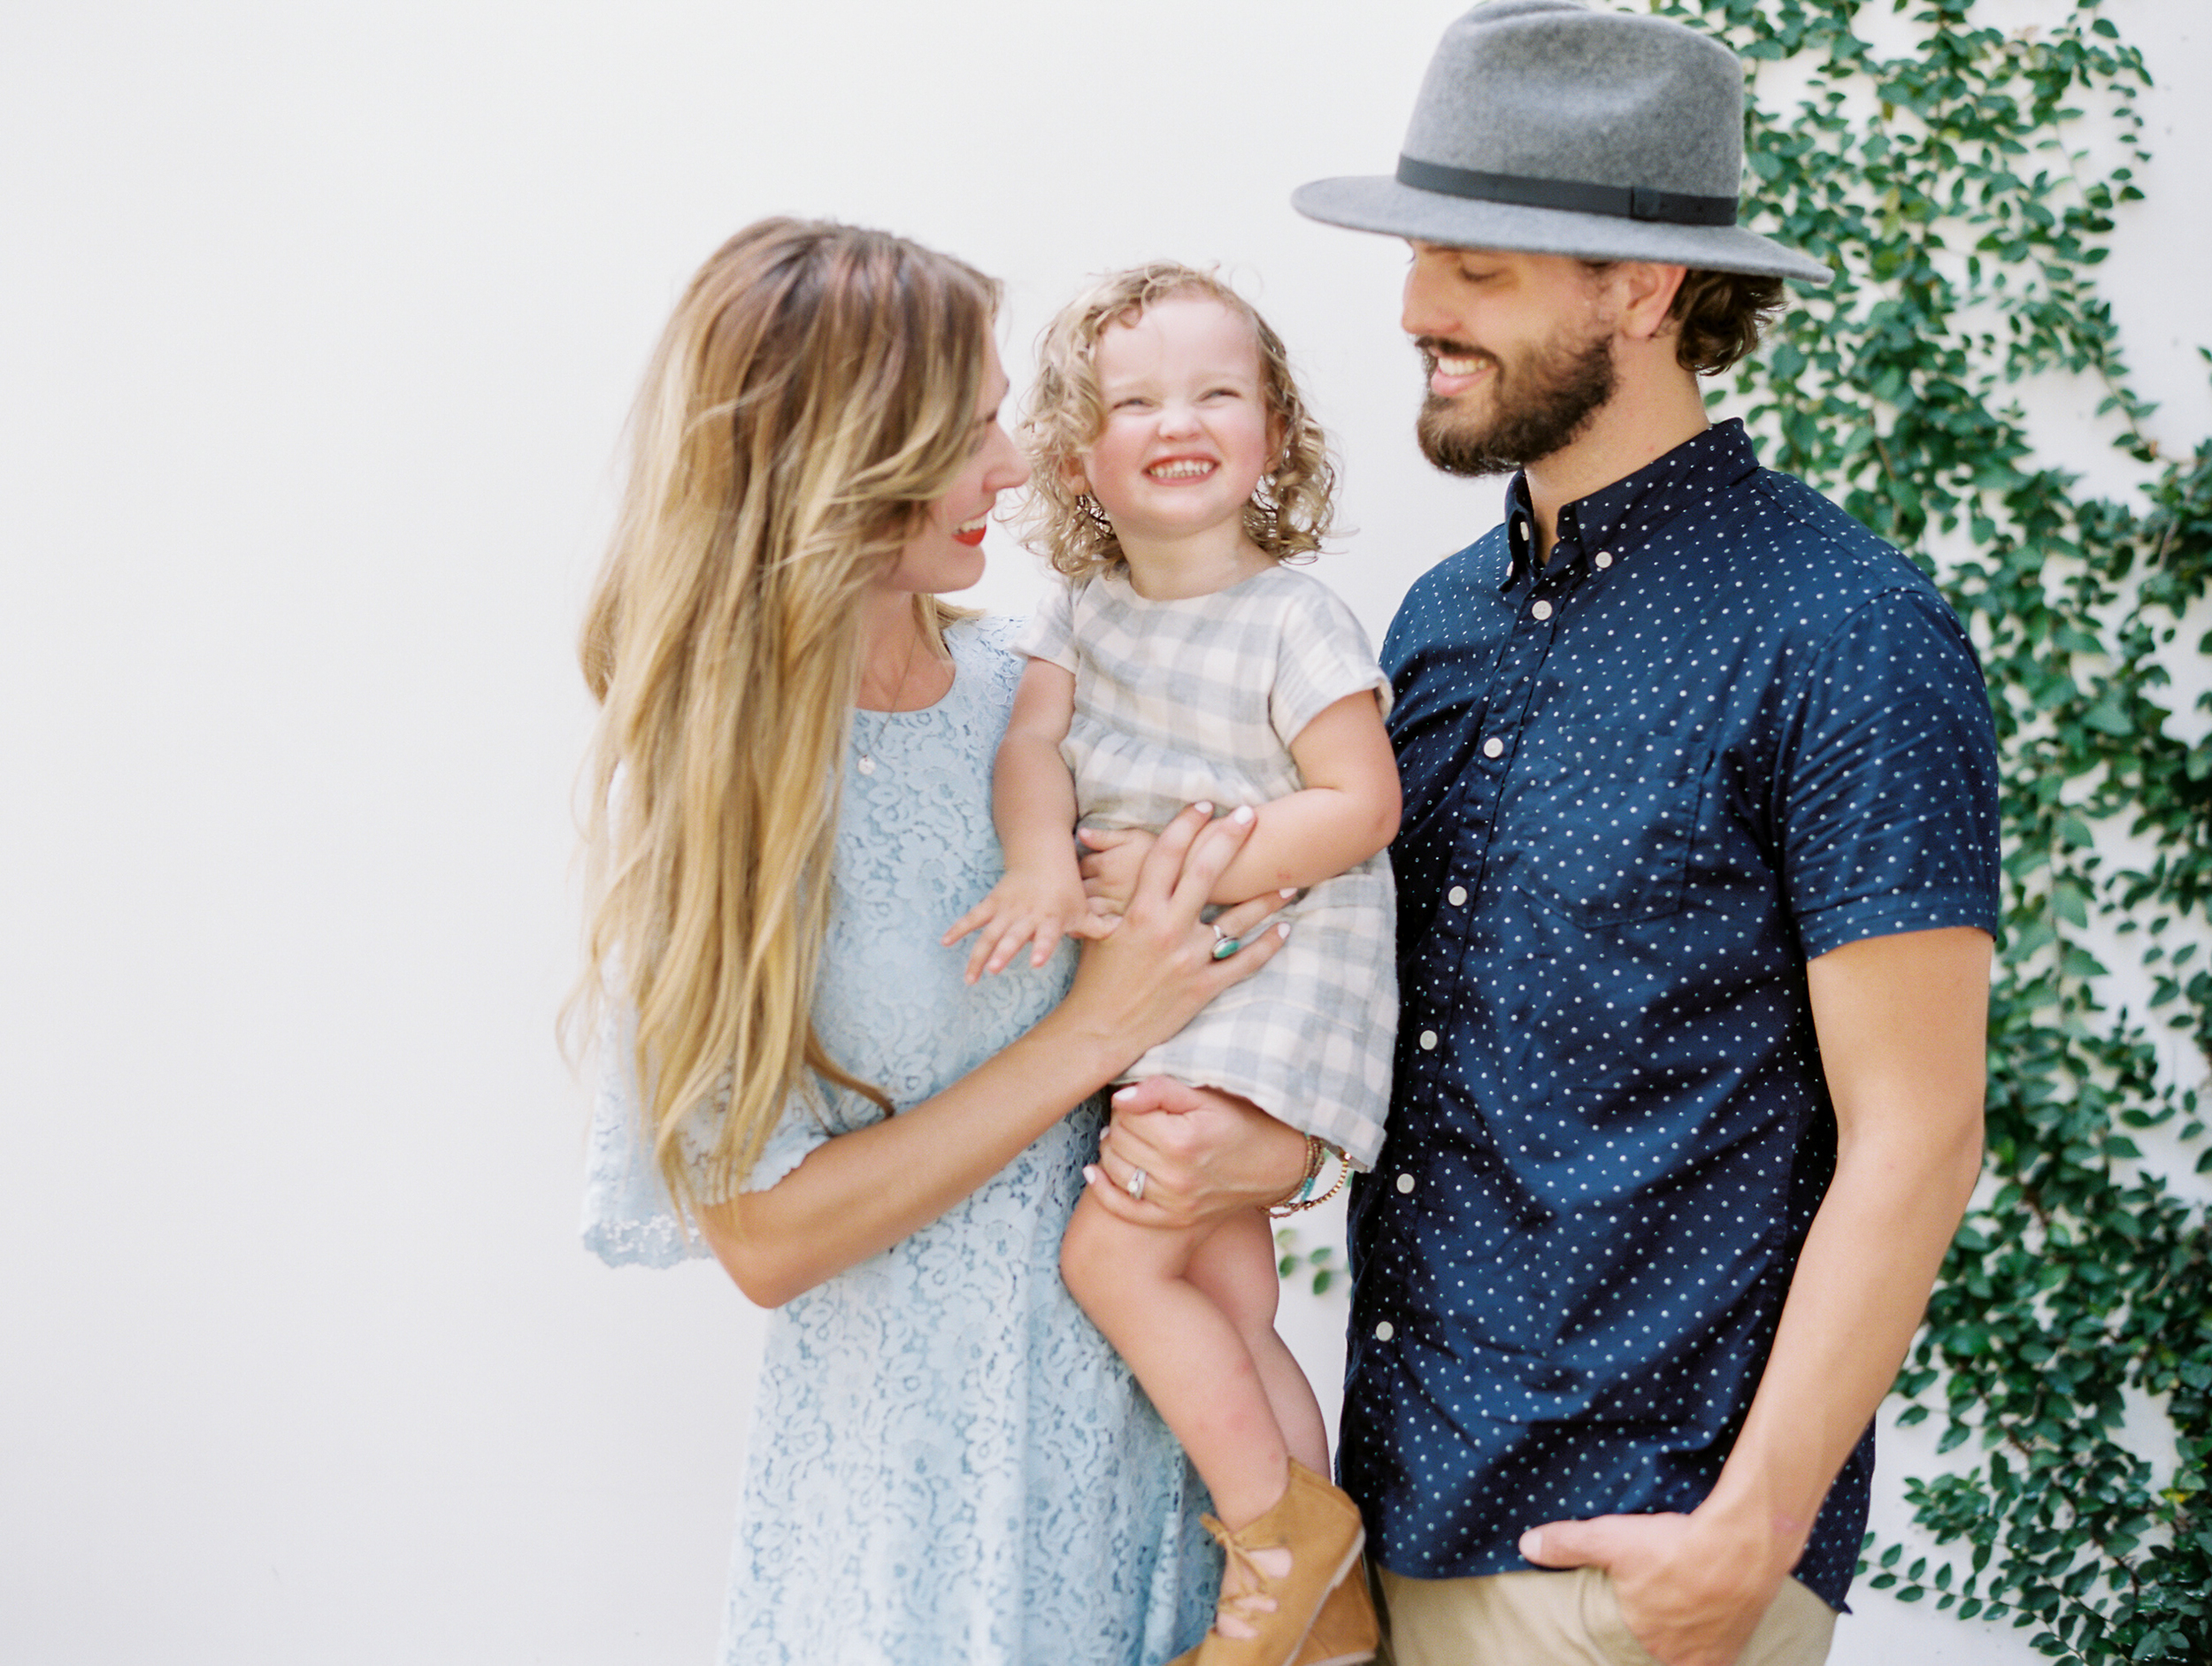 Hipster family photo session | Kaylie B. Poplin Photography | Rosemary Beach, Florida